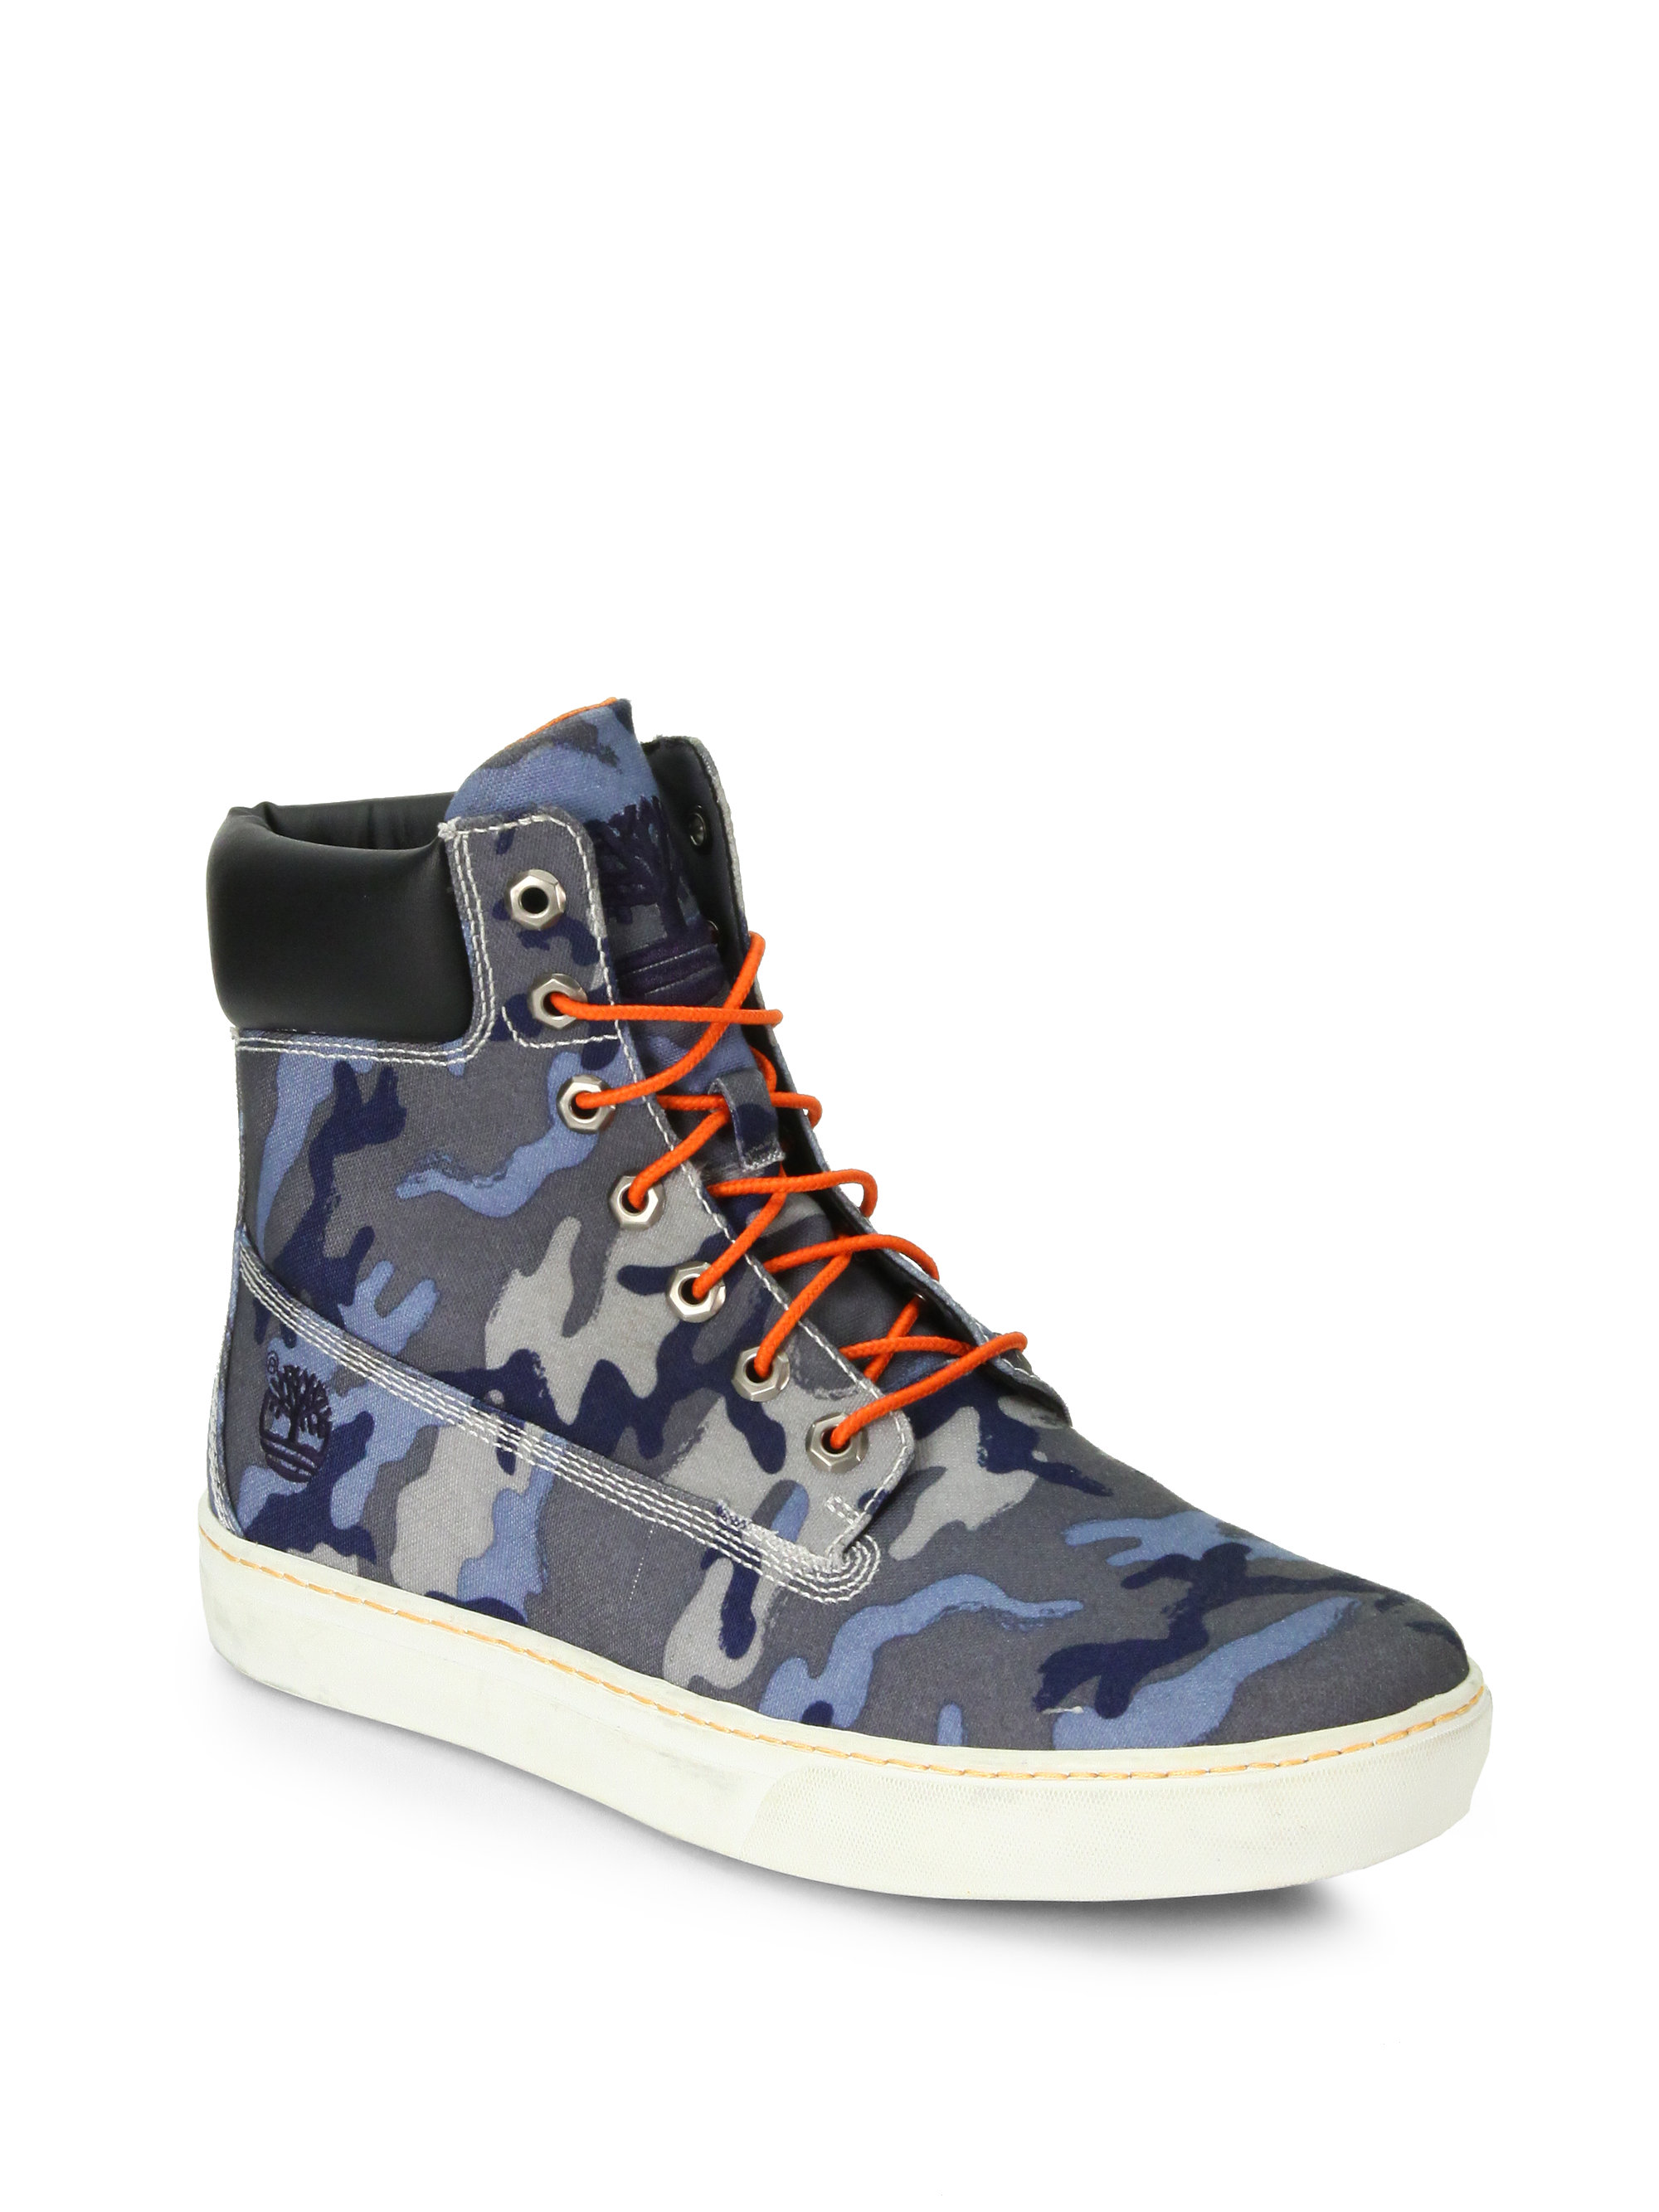 Timberland Boots For Men With Jeans